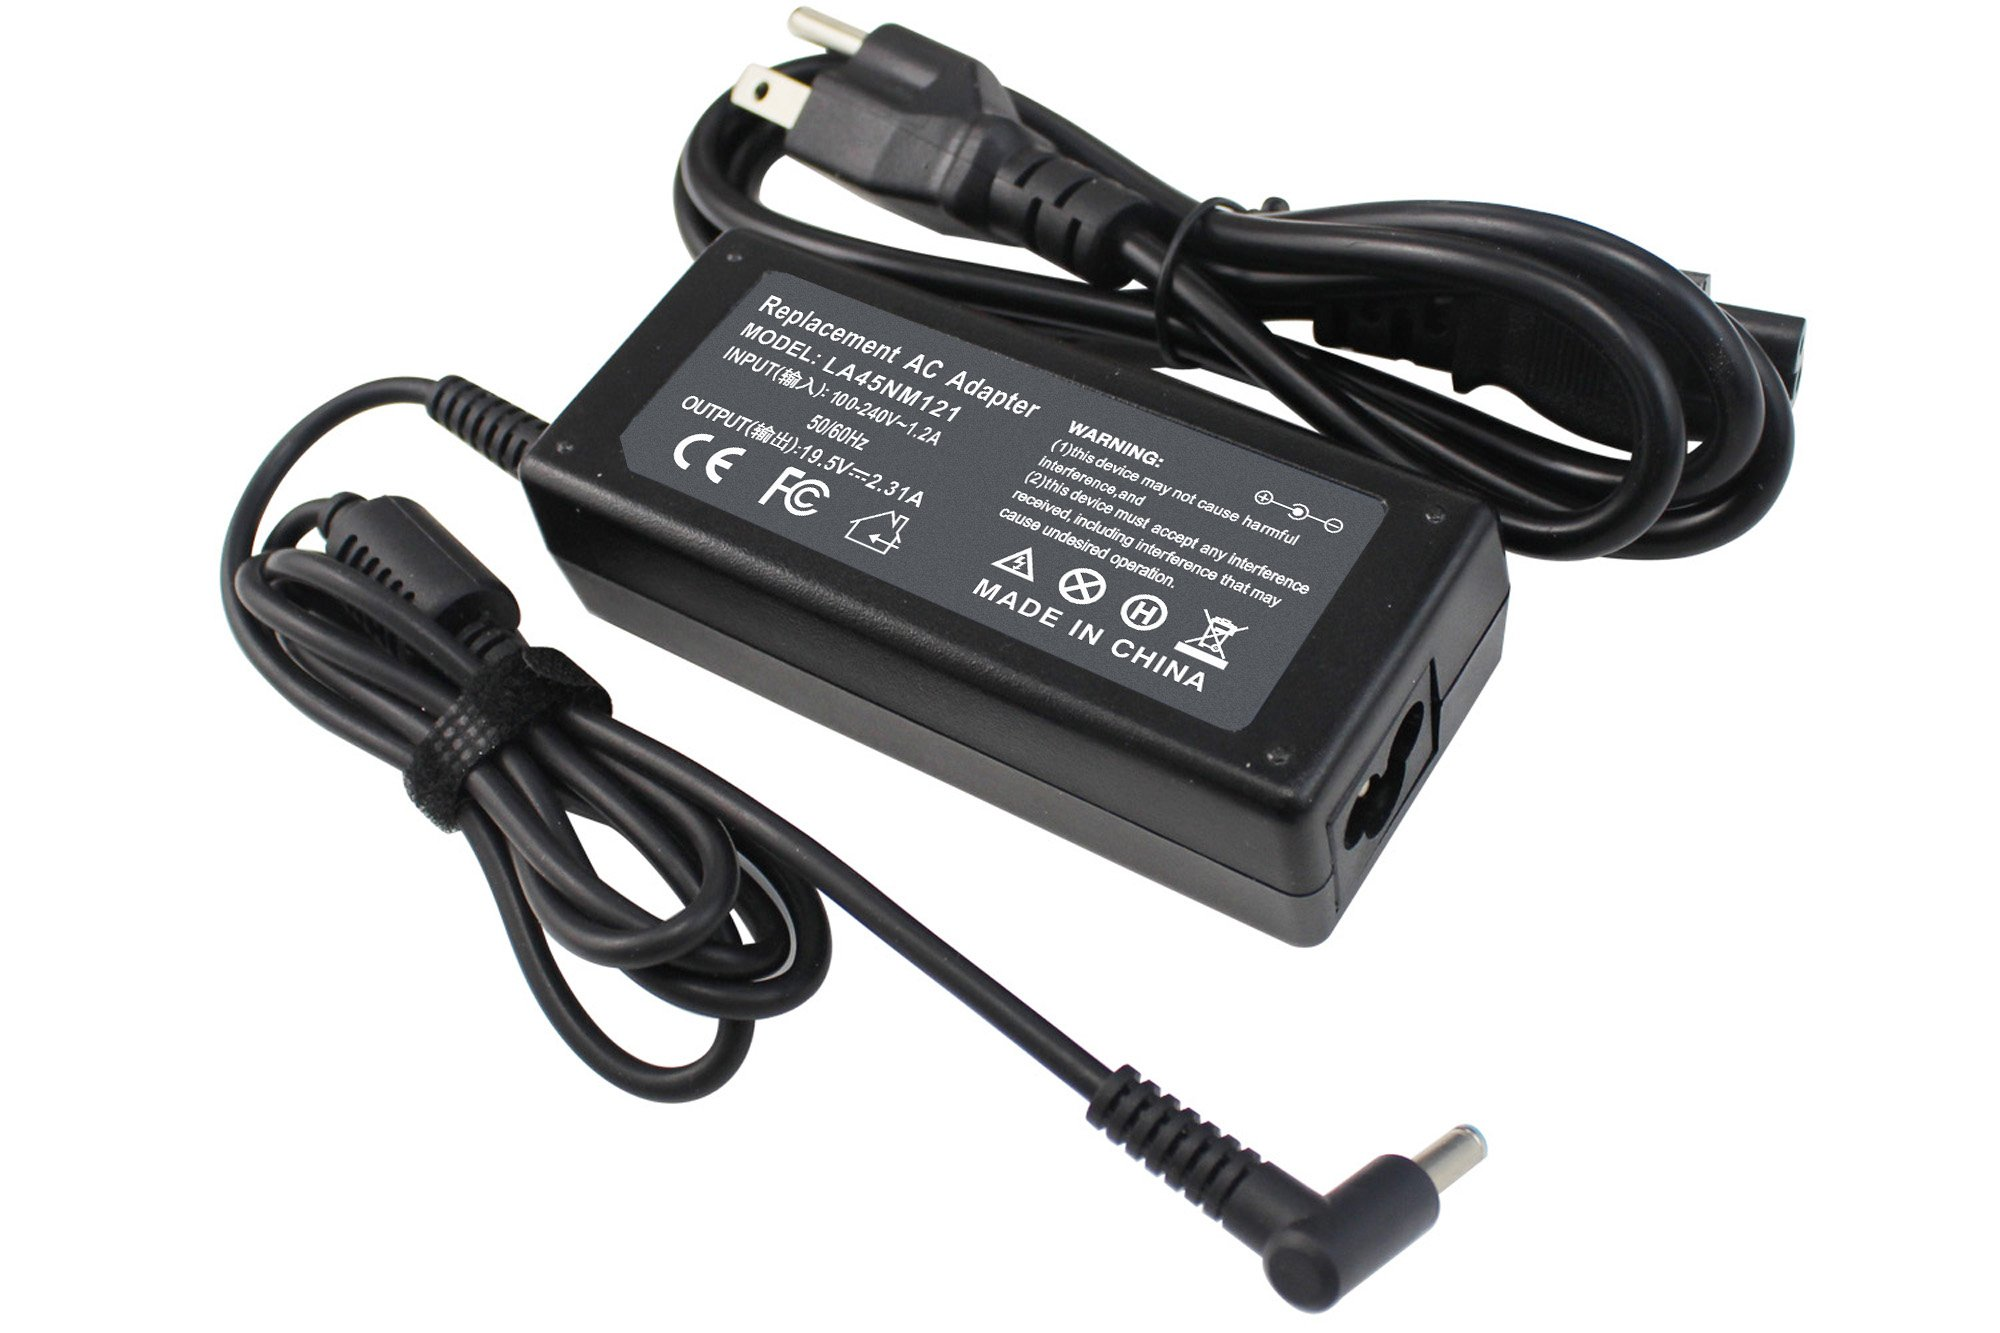 NOCCI 19.5V 2.31A 45W 4.5x3.0mm AC Adapter Laptop Charger Power Cord for HP 719309-001 719309-003 721092-001 741727-001 740015-001 740015-003 ADP-45WD B; Stream 11 13 14